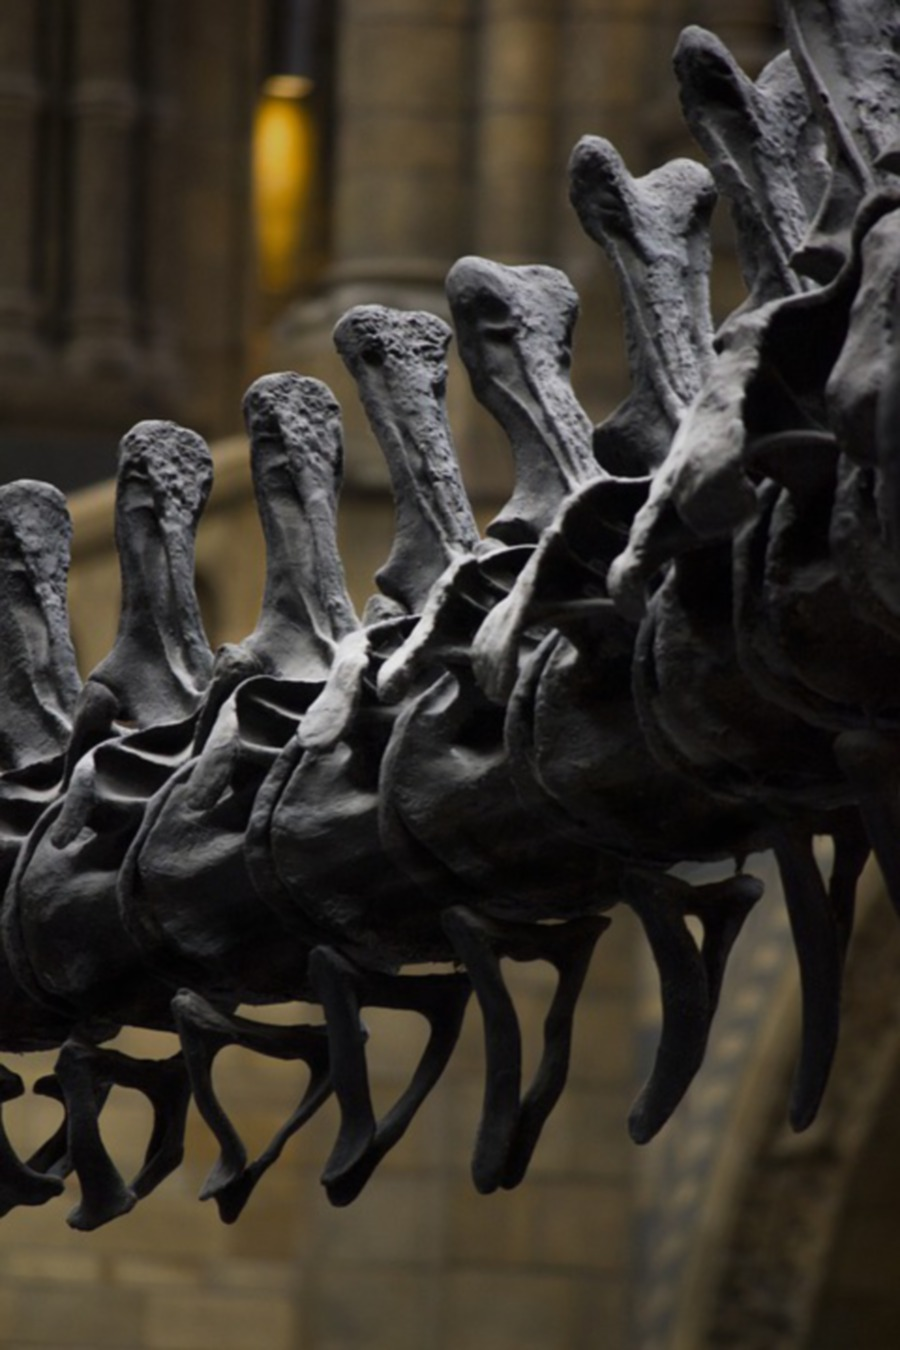 New dinosaur species discovered in Japan | New Straits Times